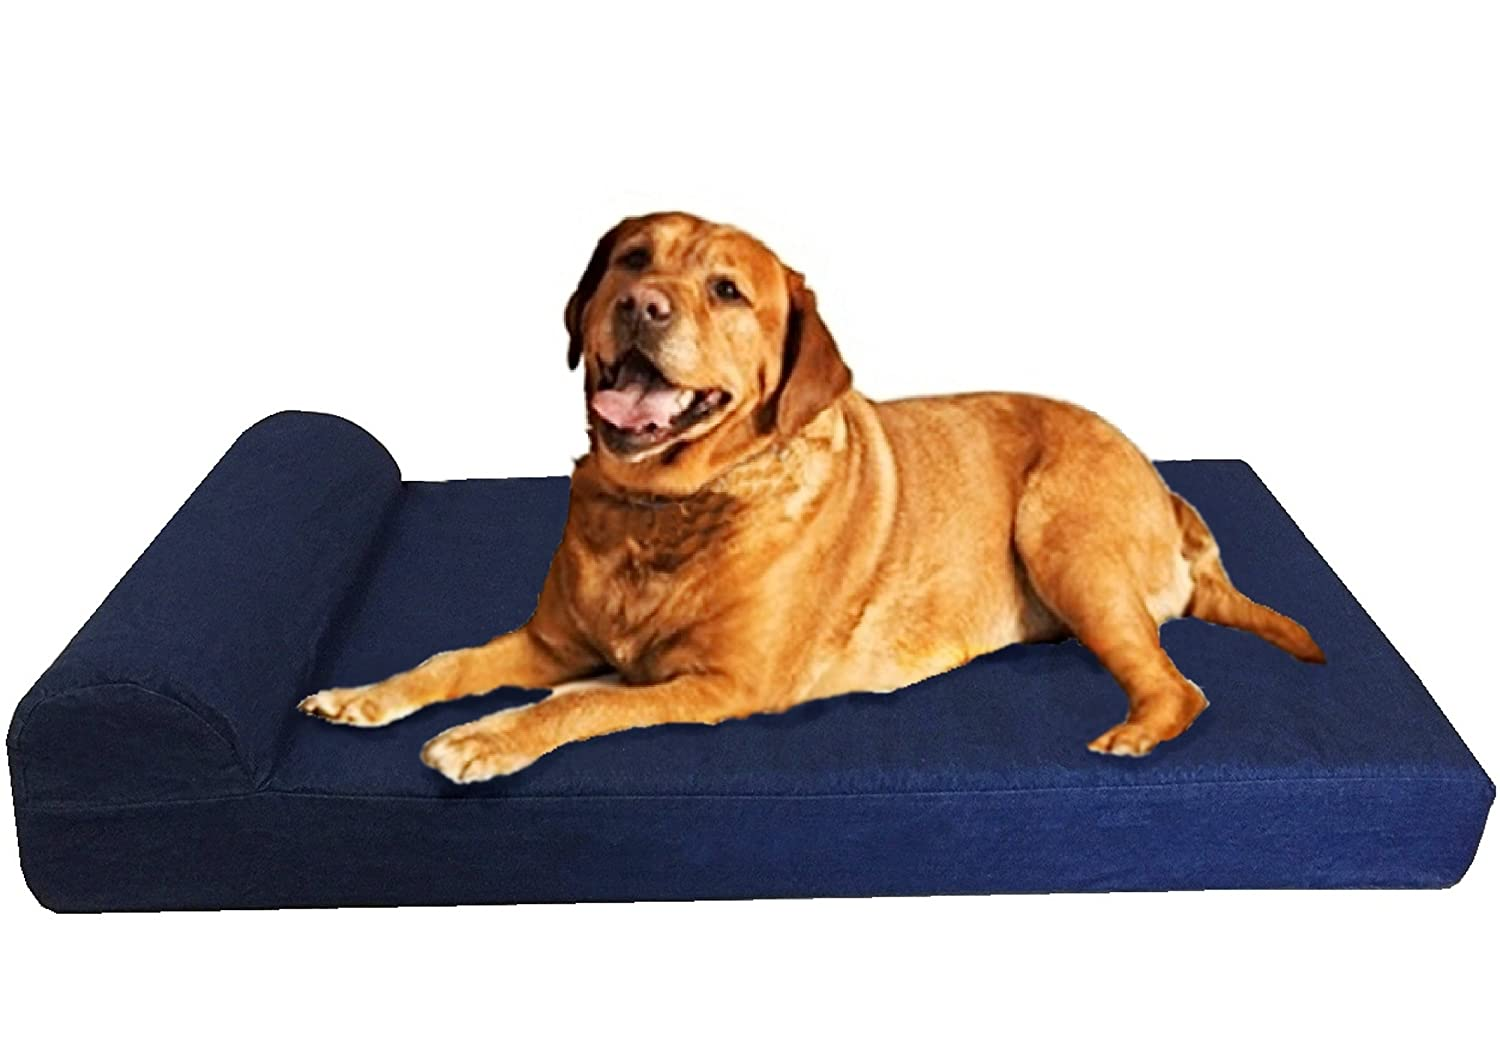 Extra large orthopedic dog beds best price - Amazon Com Dogbed4less Extra Large Head Rest Pillow Orthopedic Gel Memory Foam Pet Dog Bed For Large Dog Waterproof Liner With Denim Blue Cover